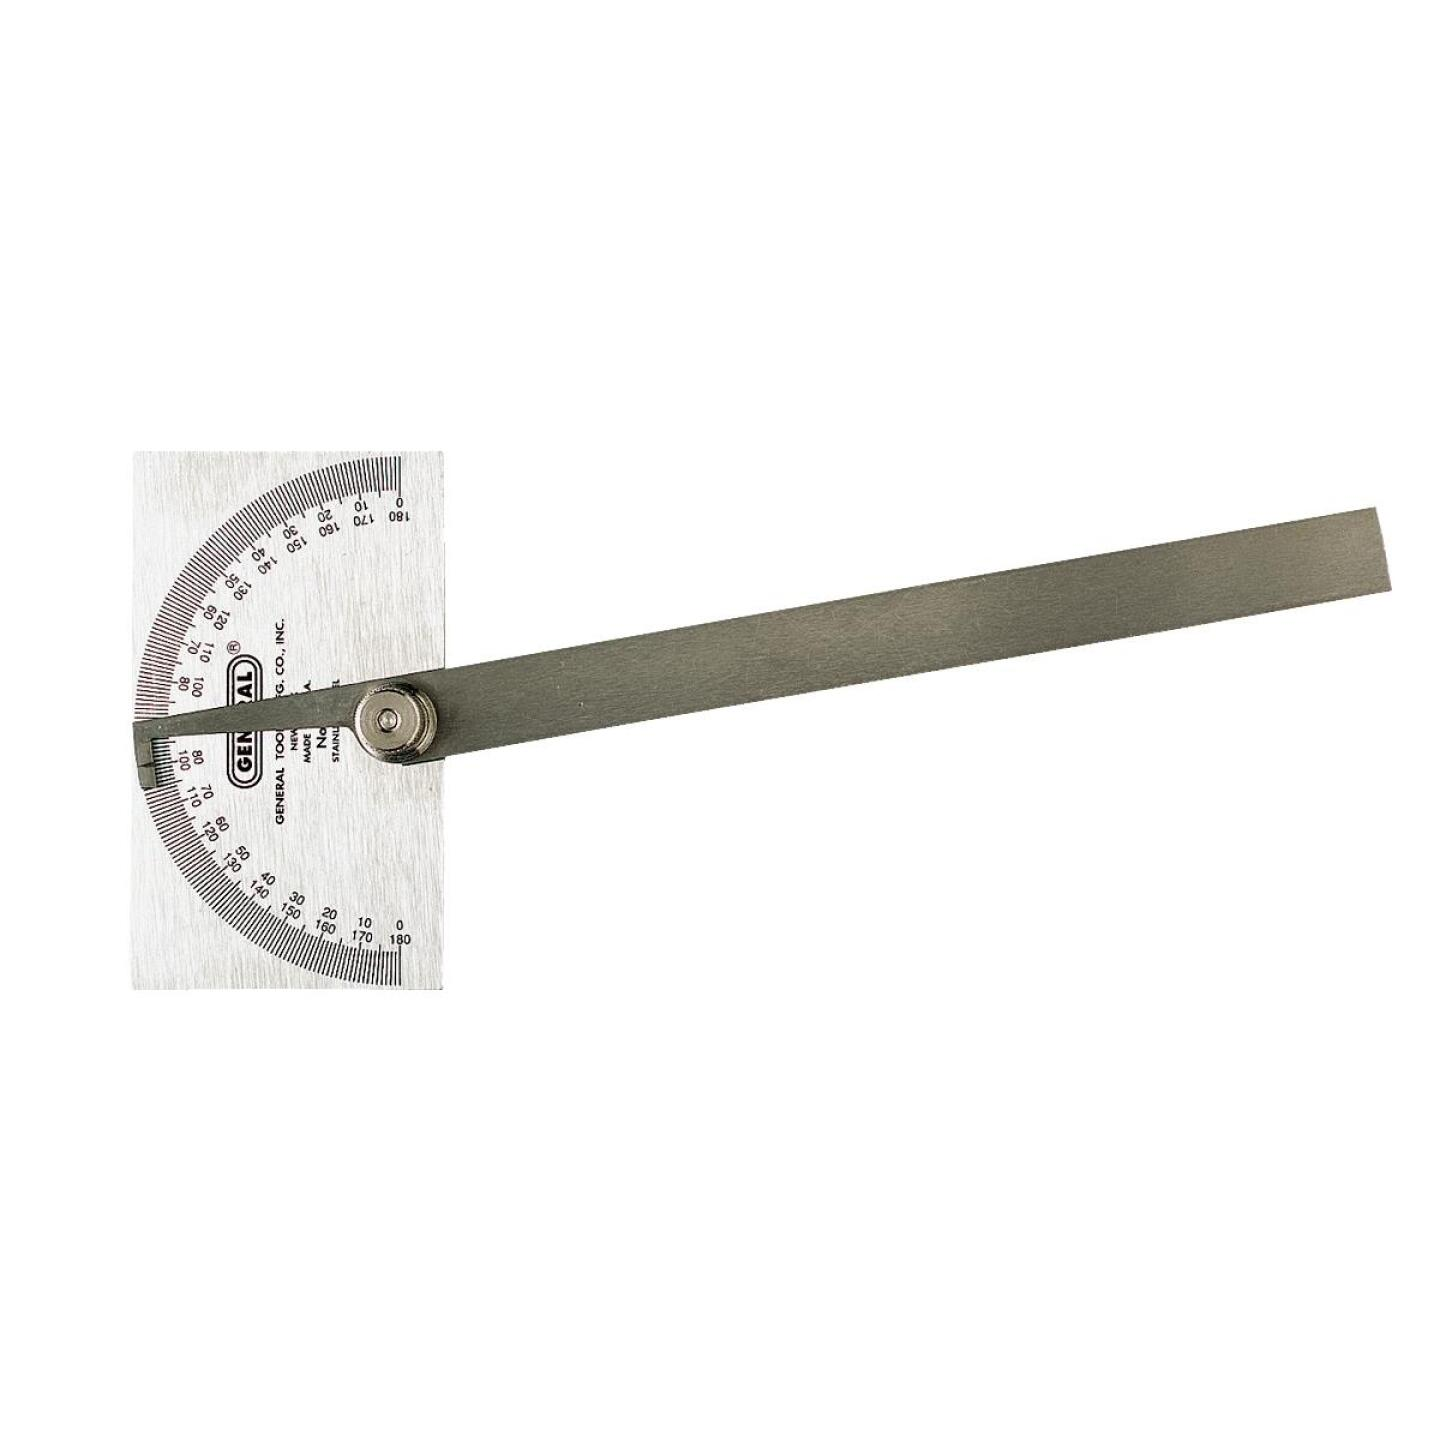 General Tools Steel Square Head Protractor Image 1